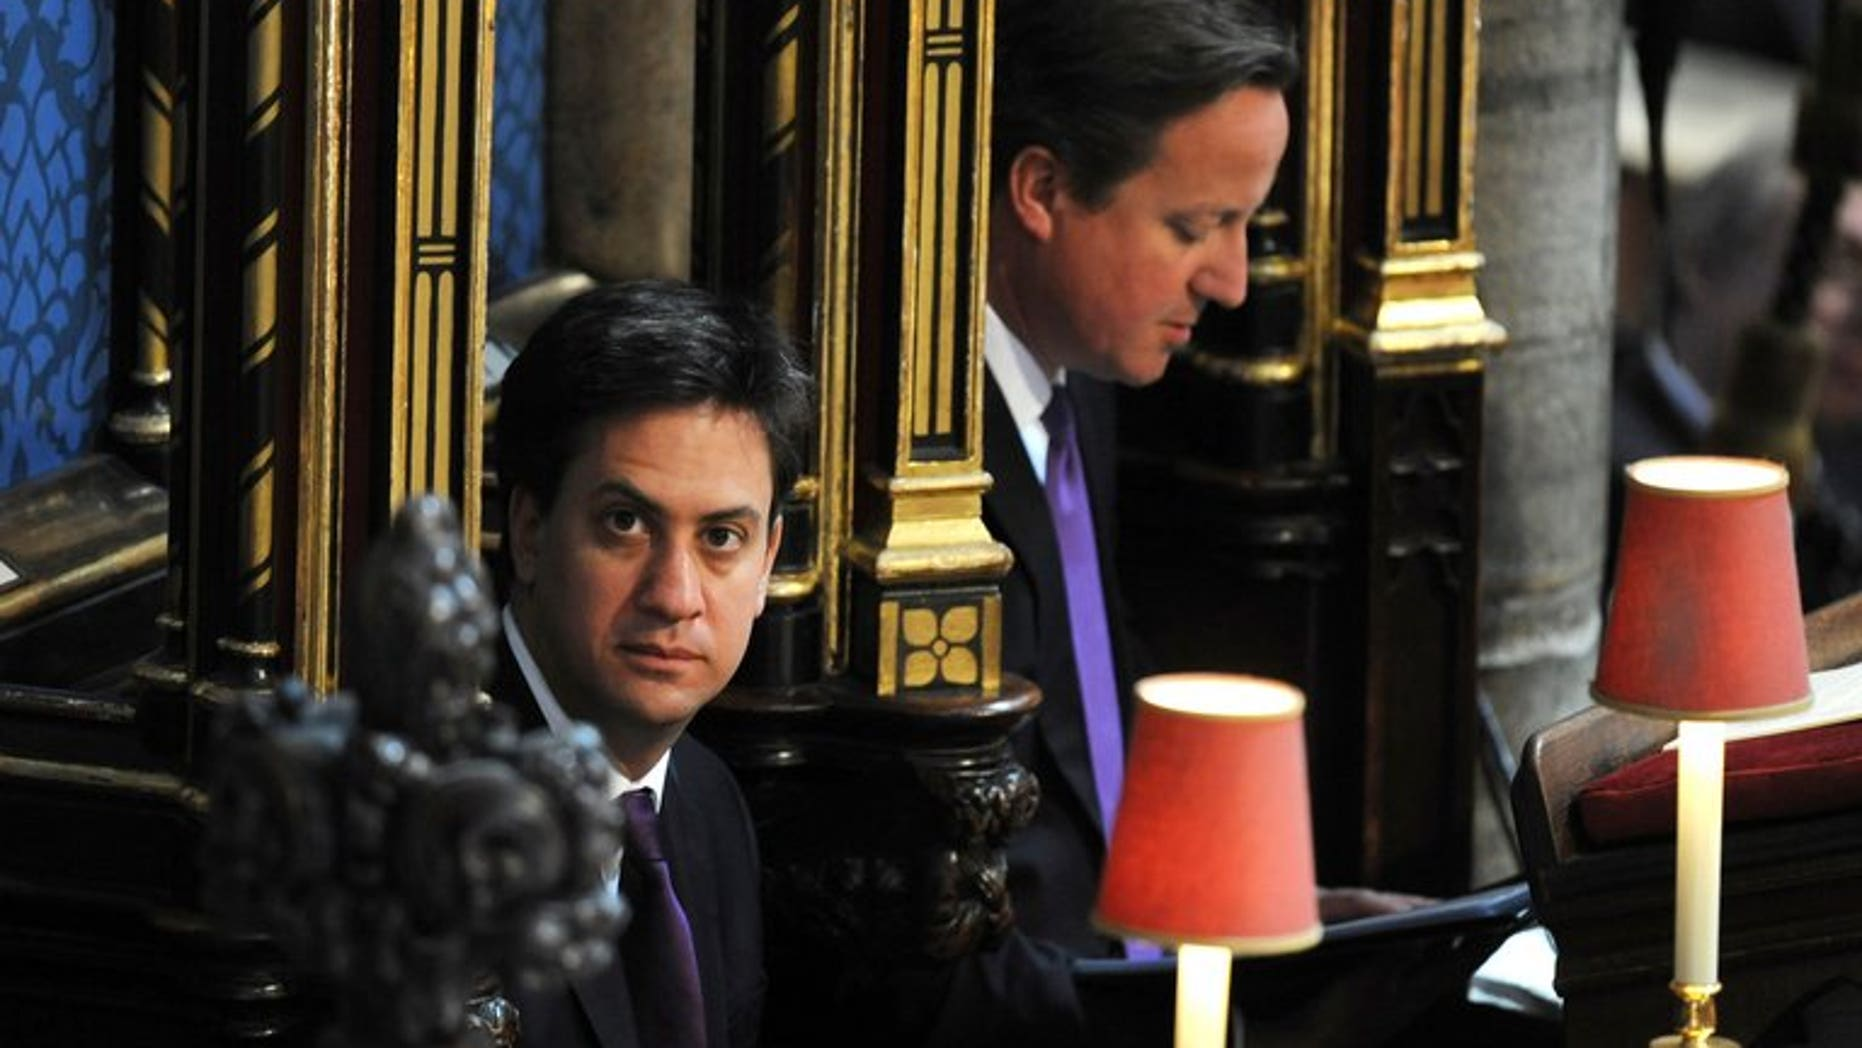 Prime Minister David Cameron (R) and Labour Party leader Ed Miliband attend a service at Westminster Abbey in London on June 4, 2013. Miliband has suffered a summer ratings slump, a poll out Sunday showed.